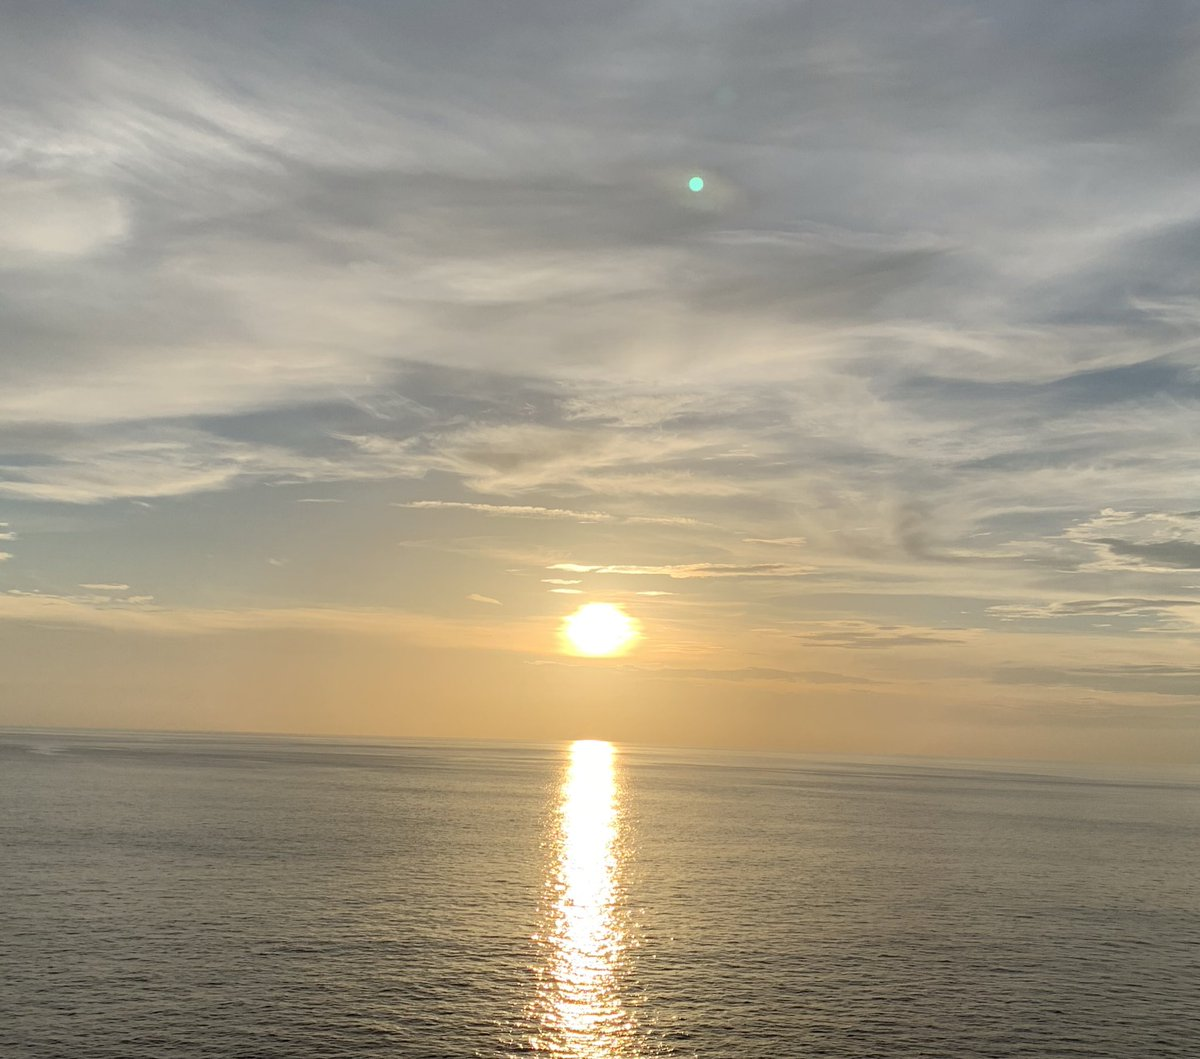 Don't Stress  Do your Best Forget the Rest ☀️☀️☀️☀️☀️☀️☀️☀️☀️☀️☀️☀️ #mondaymotivation #dayslikethese #sunrise_pics #saltlife #sunlights #waterside #calmbeforethestorm #oceanic #stressrelieving #justbreath #tropiclikeitshot #tropicaltalker®️